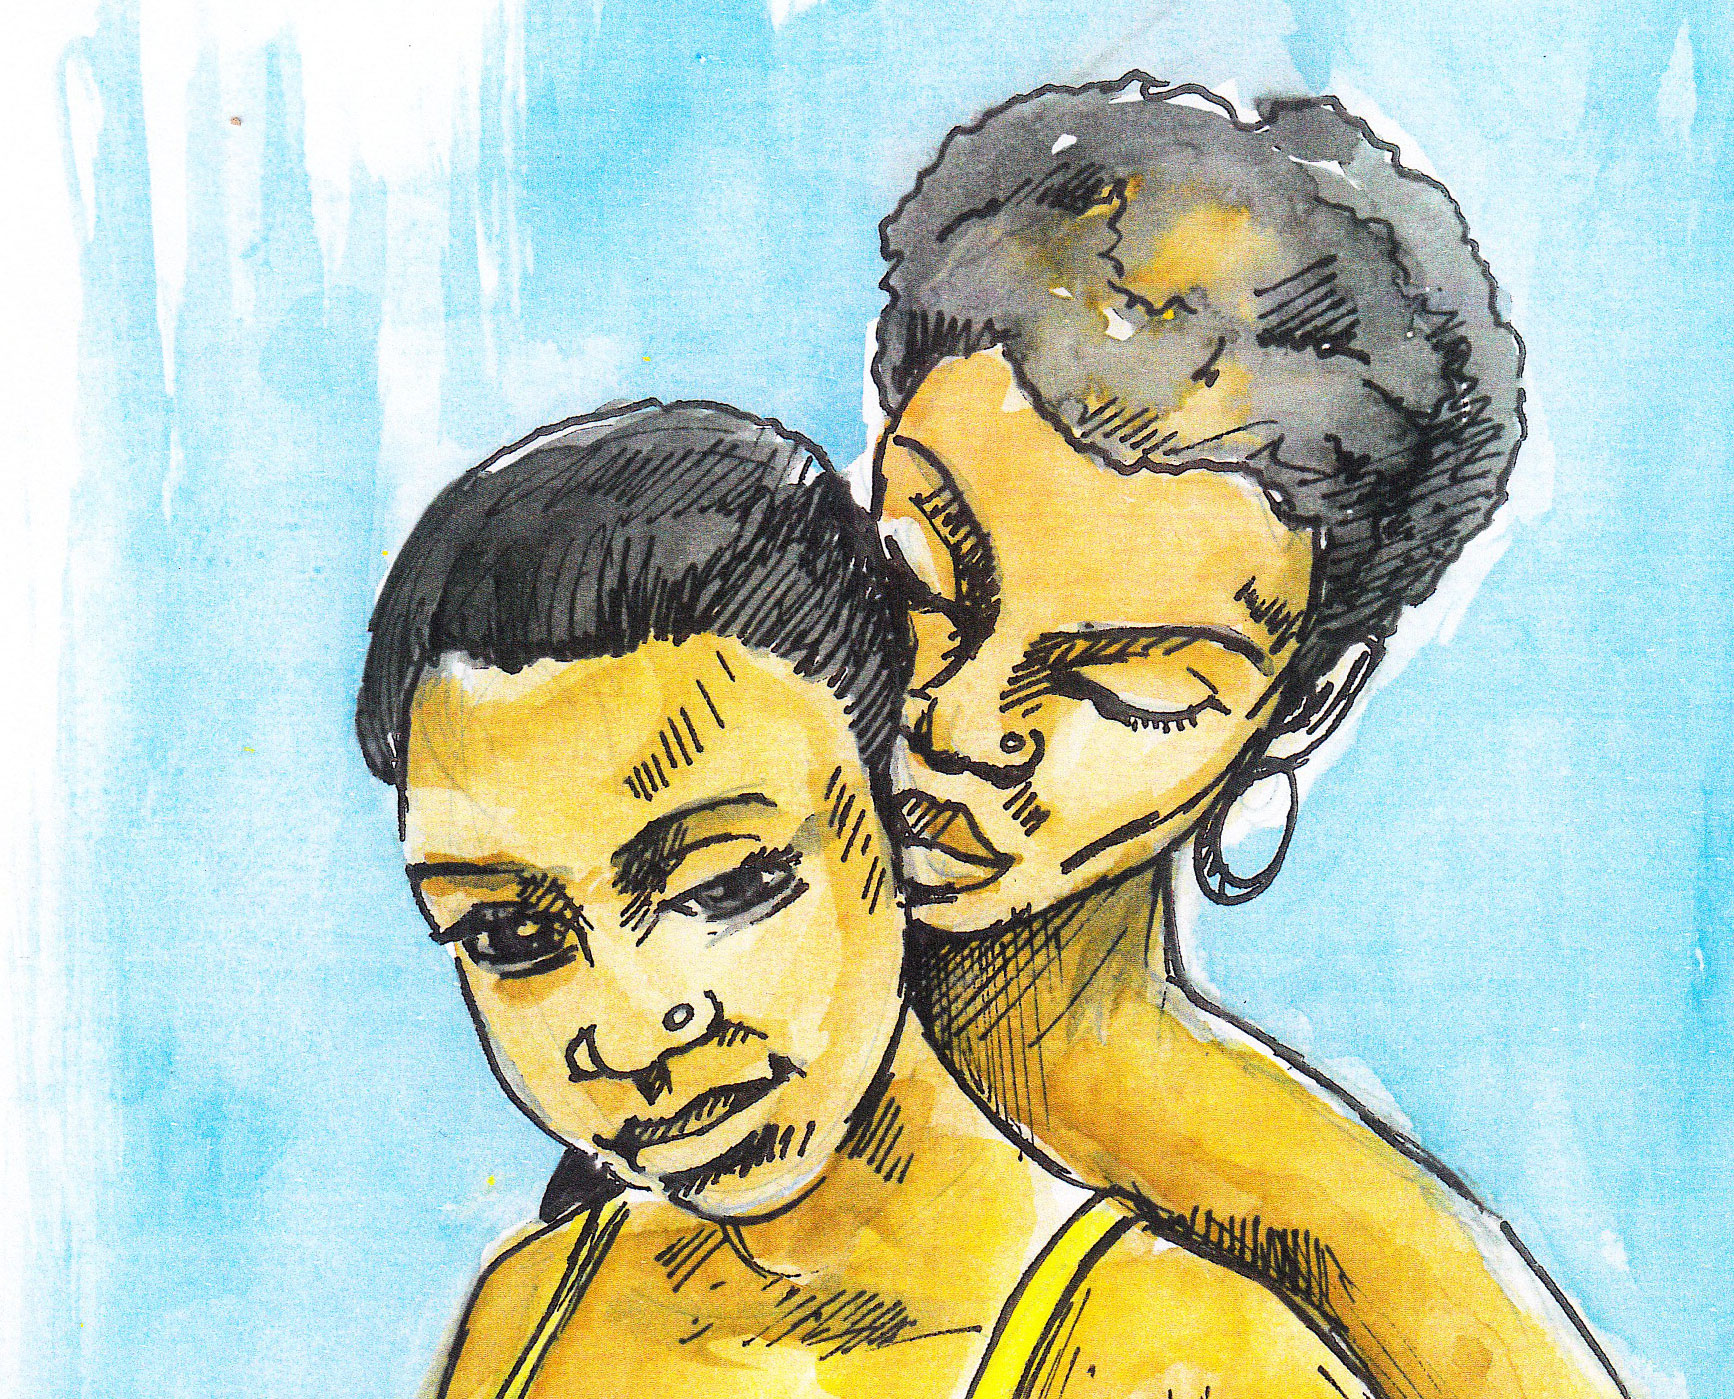 CLICK IMAGE TO DONATE TO FREE 11 LGBT PRISONERS IN CAMEROON. Illustration by Vincent Kyabayinze, East Africa Visual Artists (EAVA Artists)